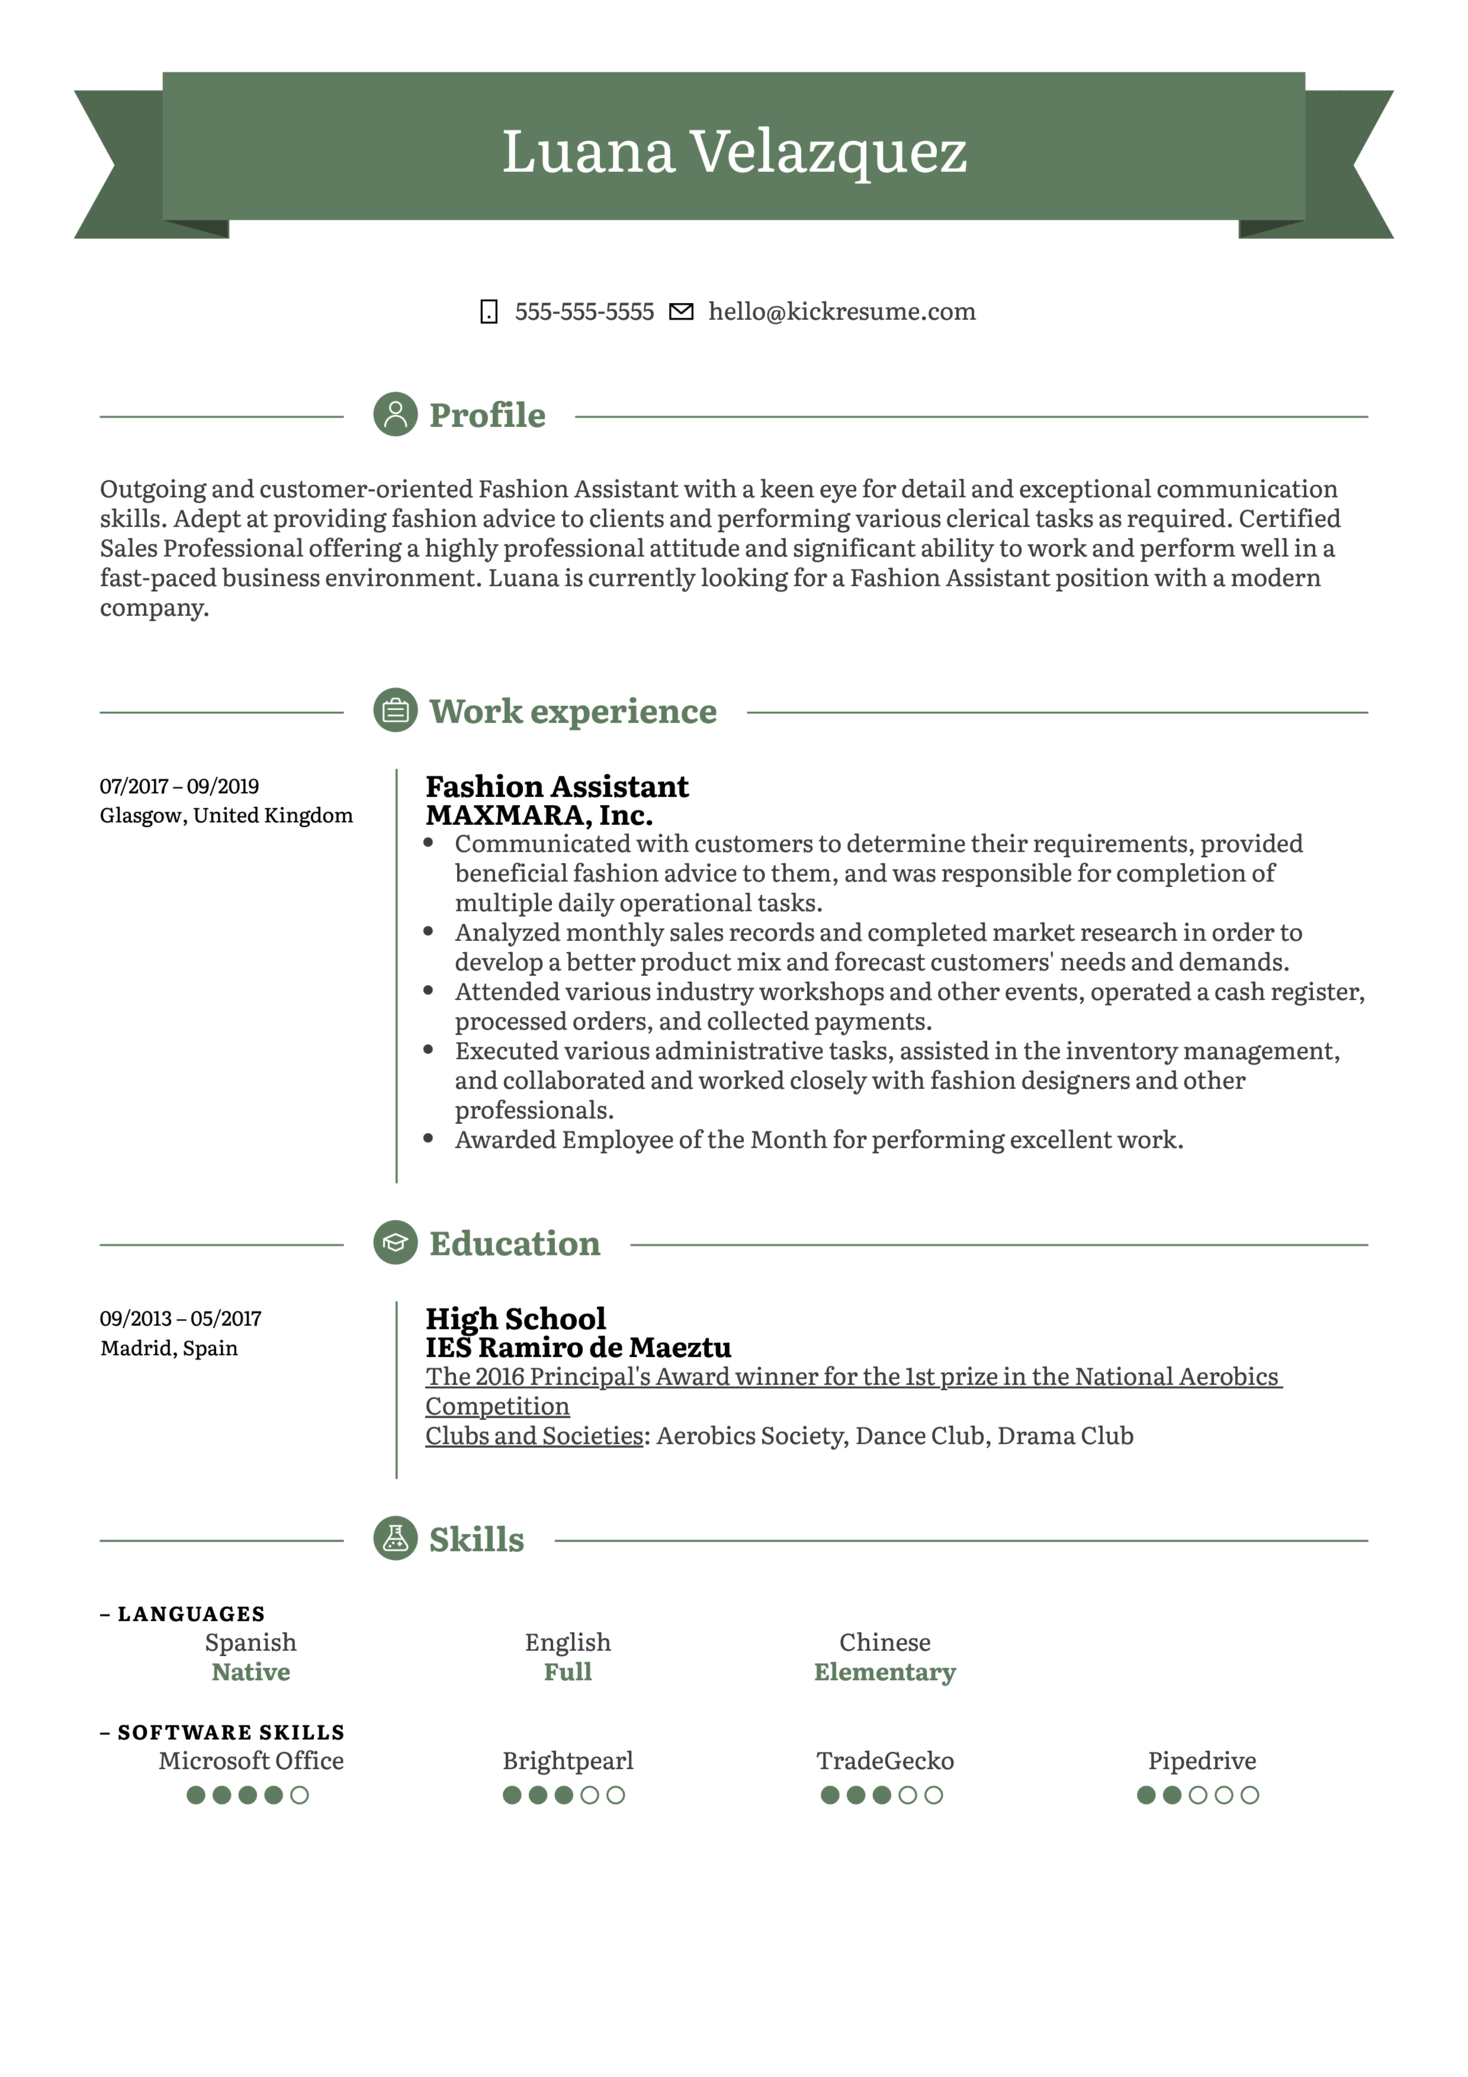 Fashion Assistant Resume Example (parte 1)